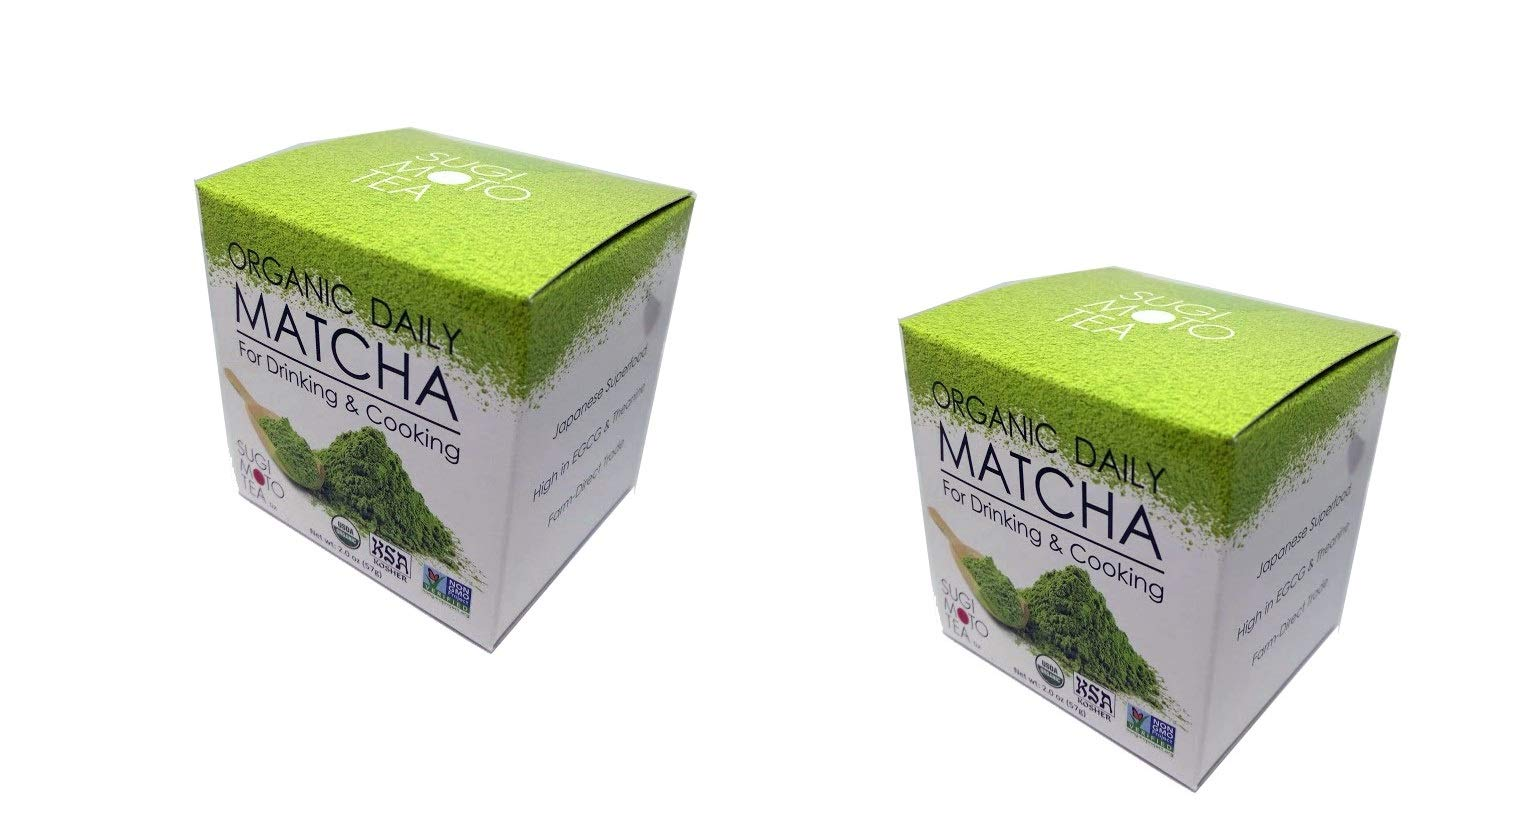 2 Pack of SA Japanese Green Tea Sugimoto Organic Daily Matcha for Drinking and Cooking, 2 Ounce